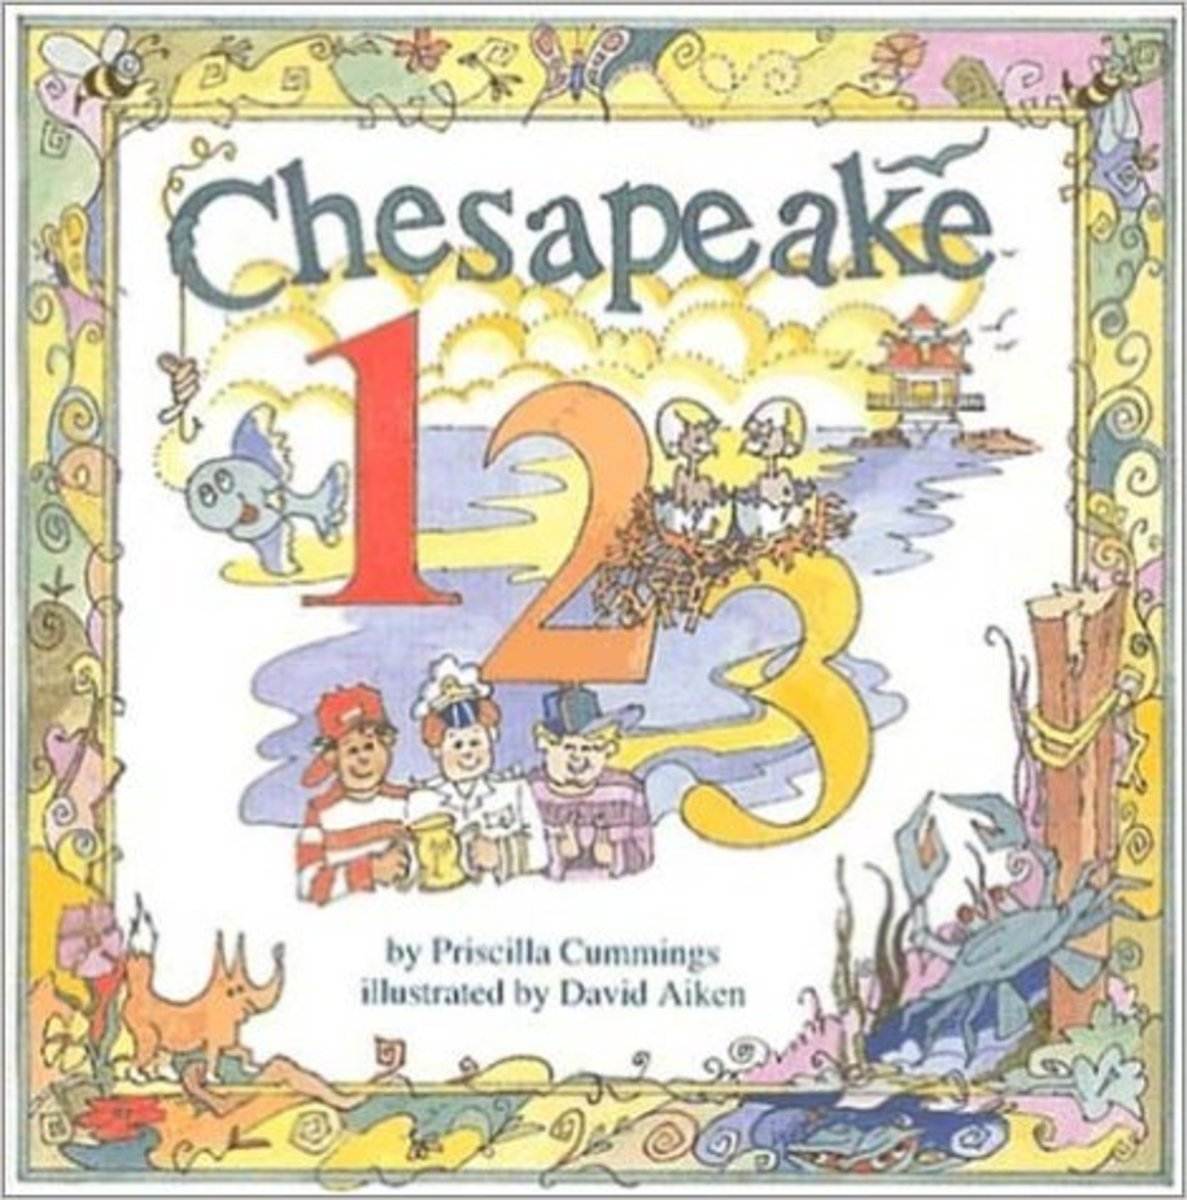 Chesapeake 1-2-3 by Priscilla Cummings